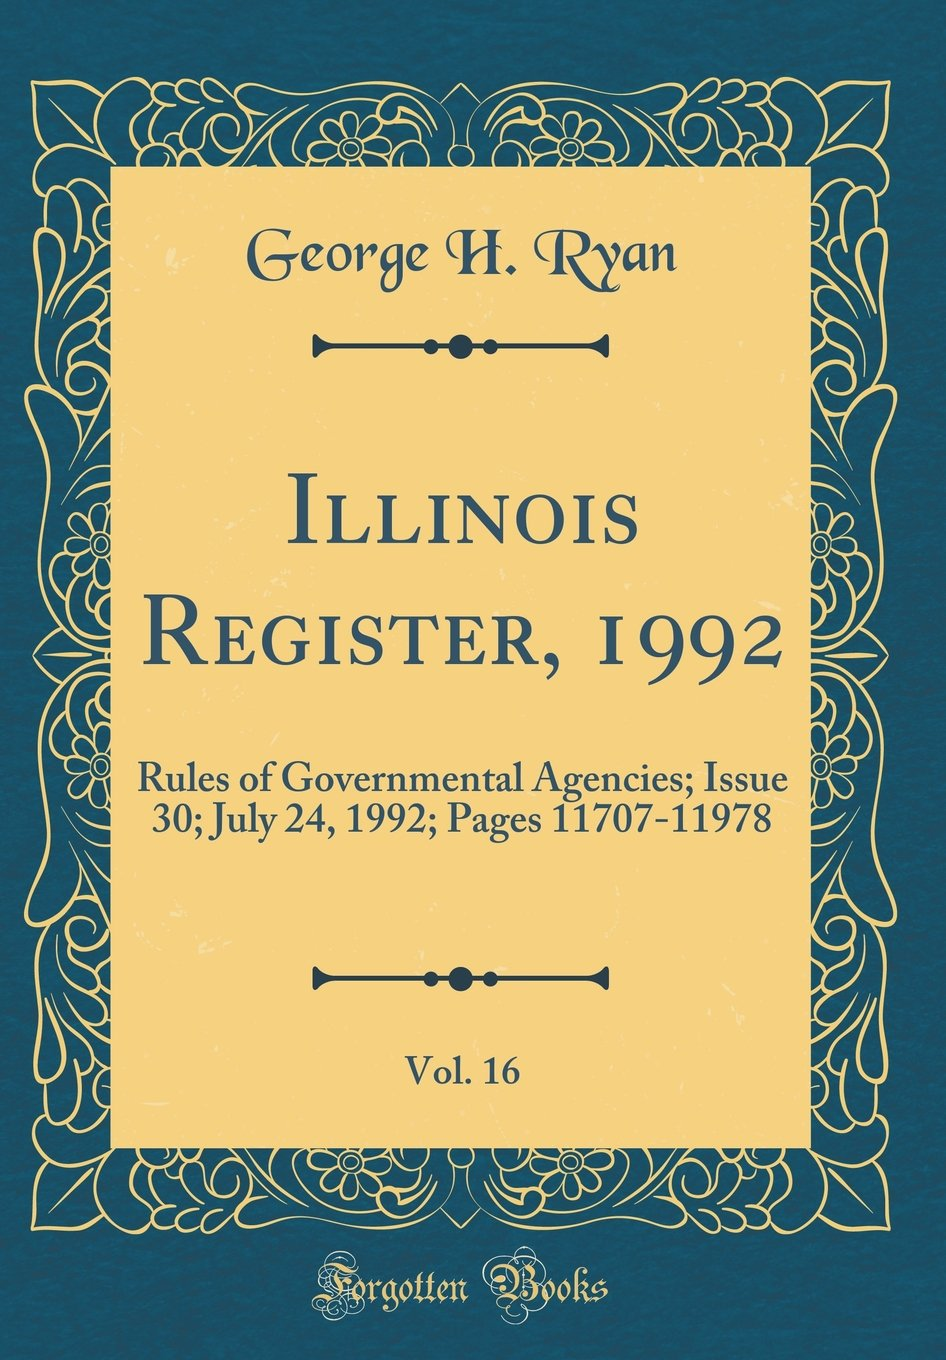 Download Illinois Register, 1992, Vol. 16: Rules of Governmental Agencies; Issue 30; July 24, 1992; Pages 11707-11978 (Classic Reprint) pdf